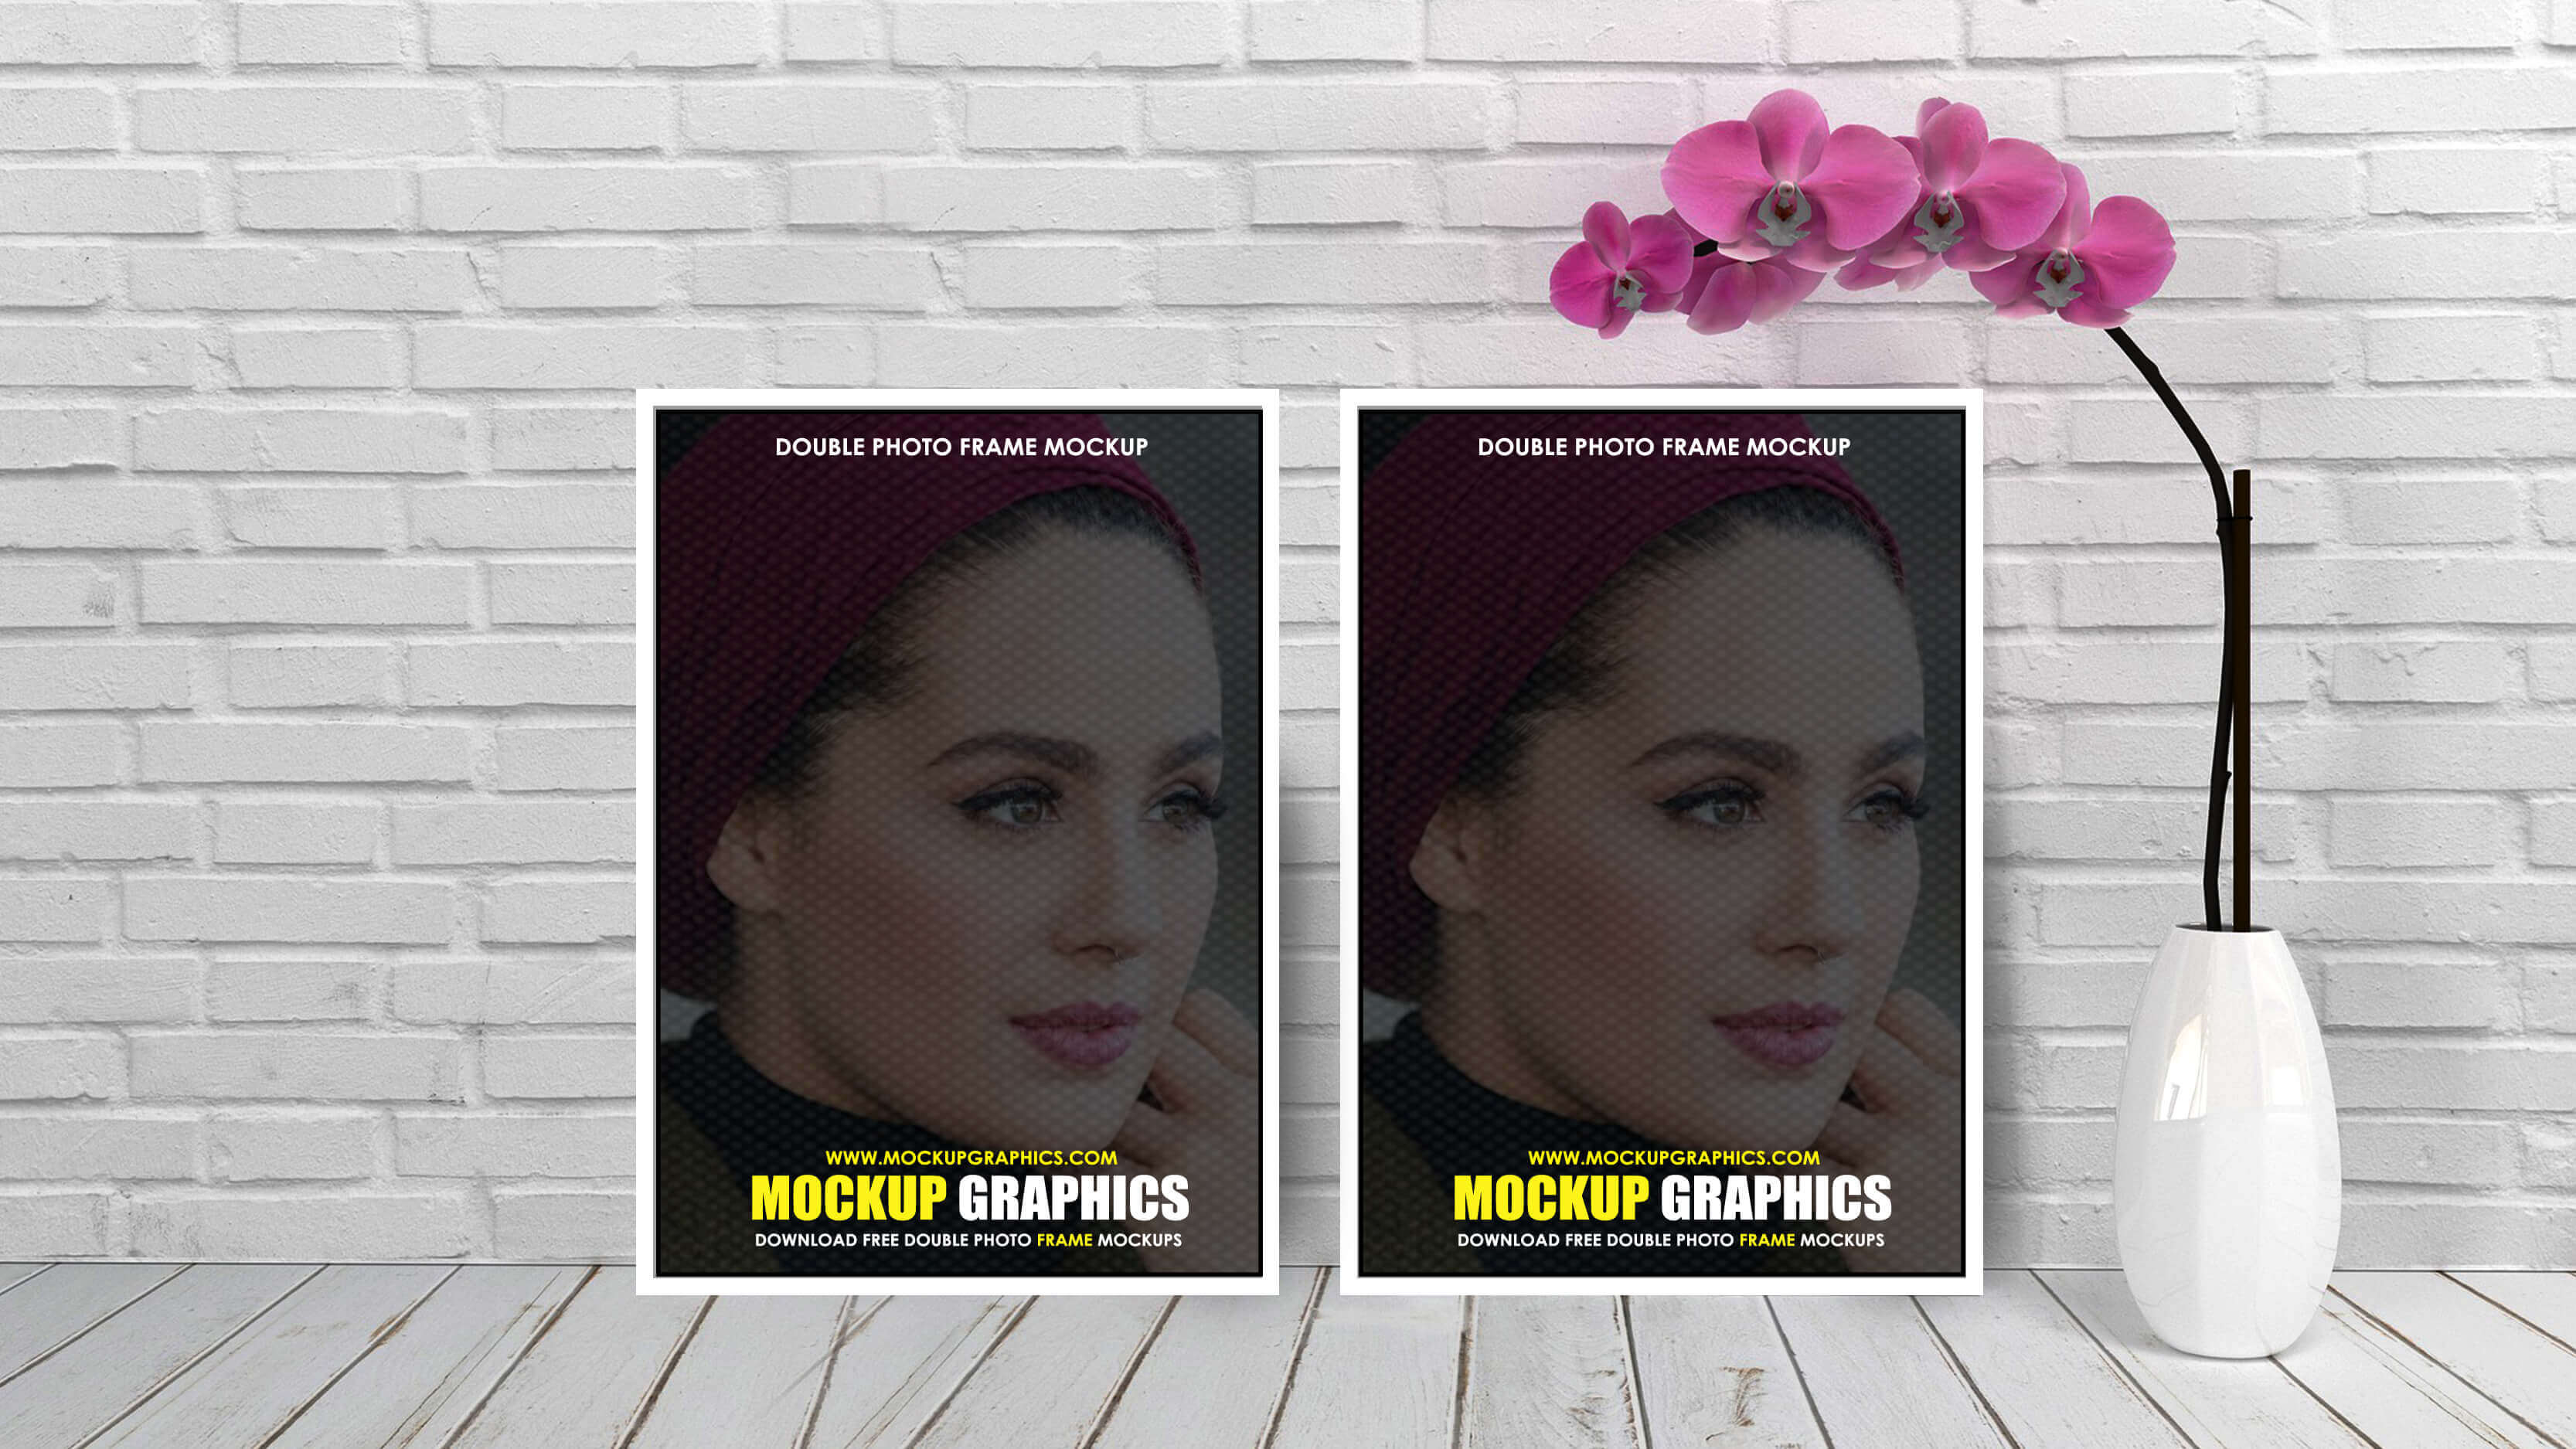 Double Photo Frame Mockup